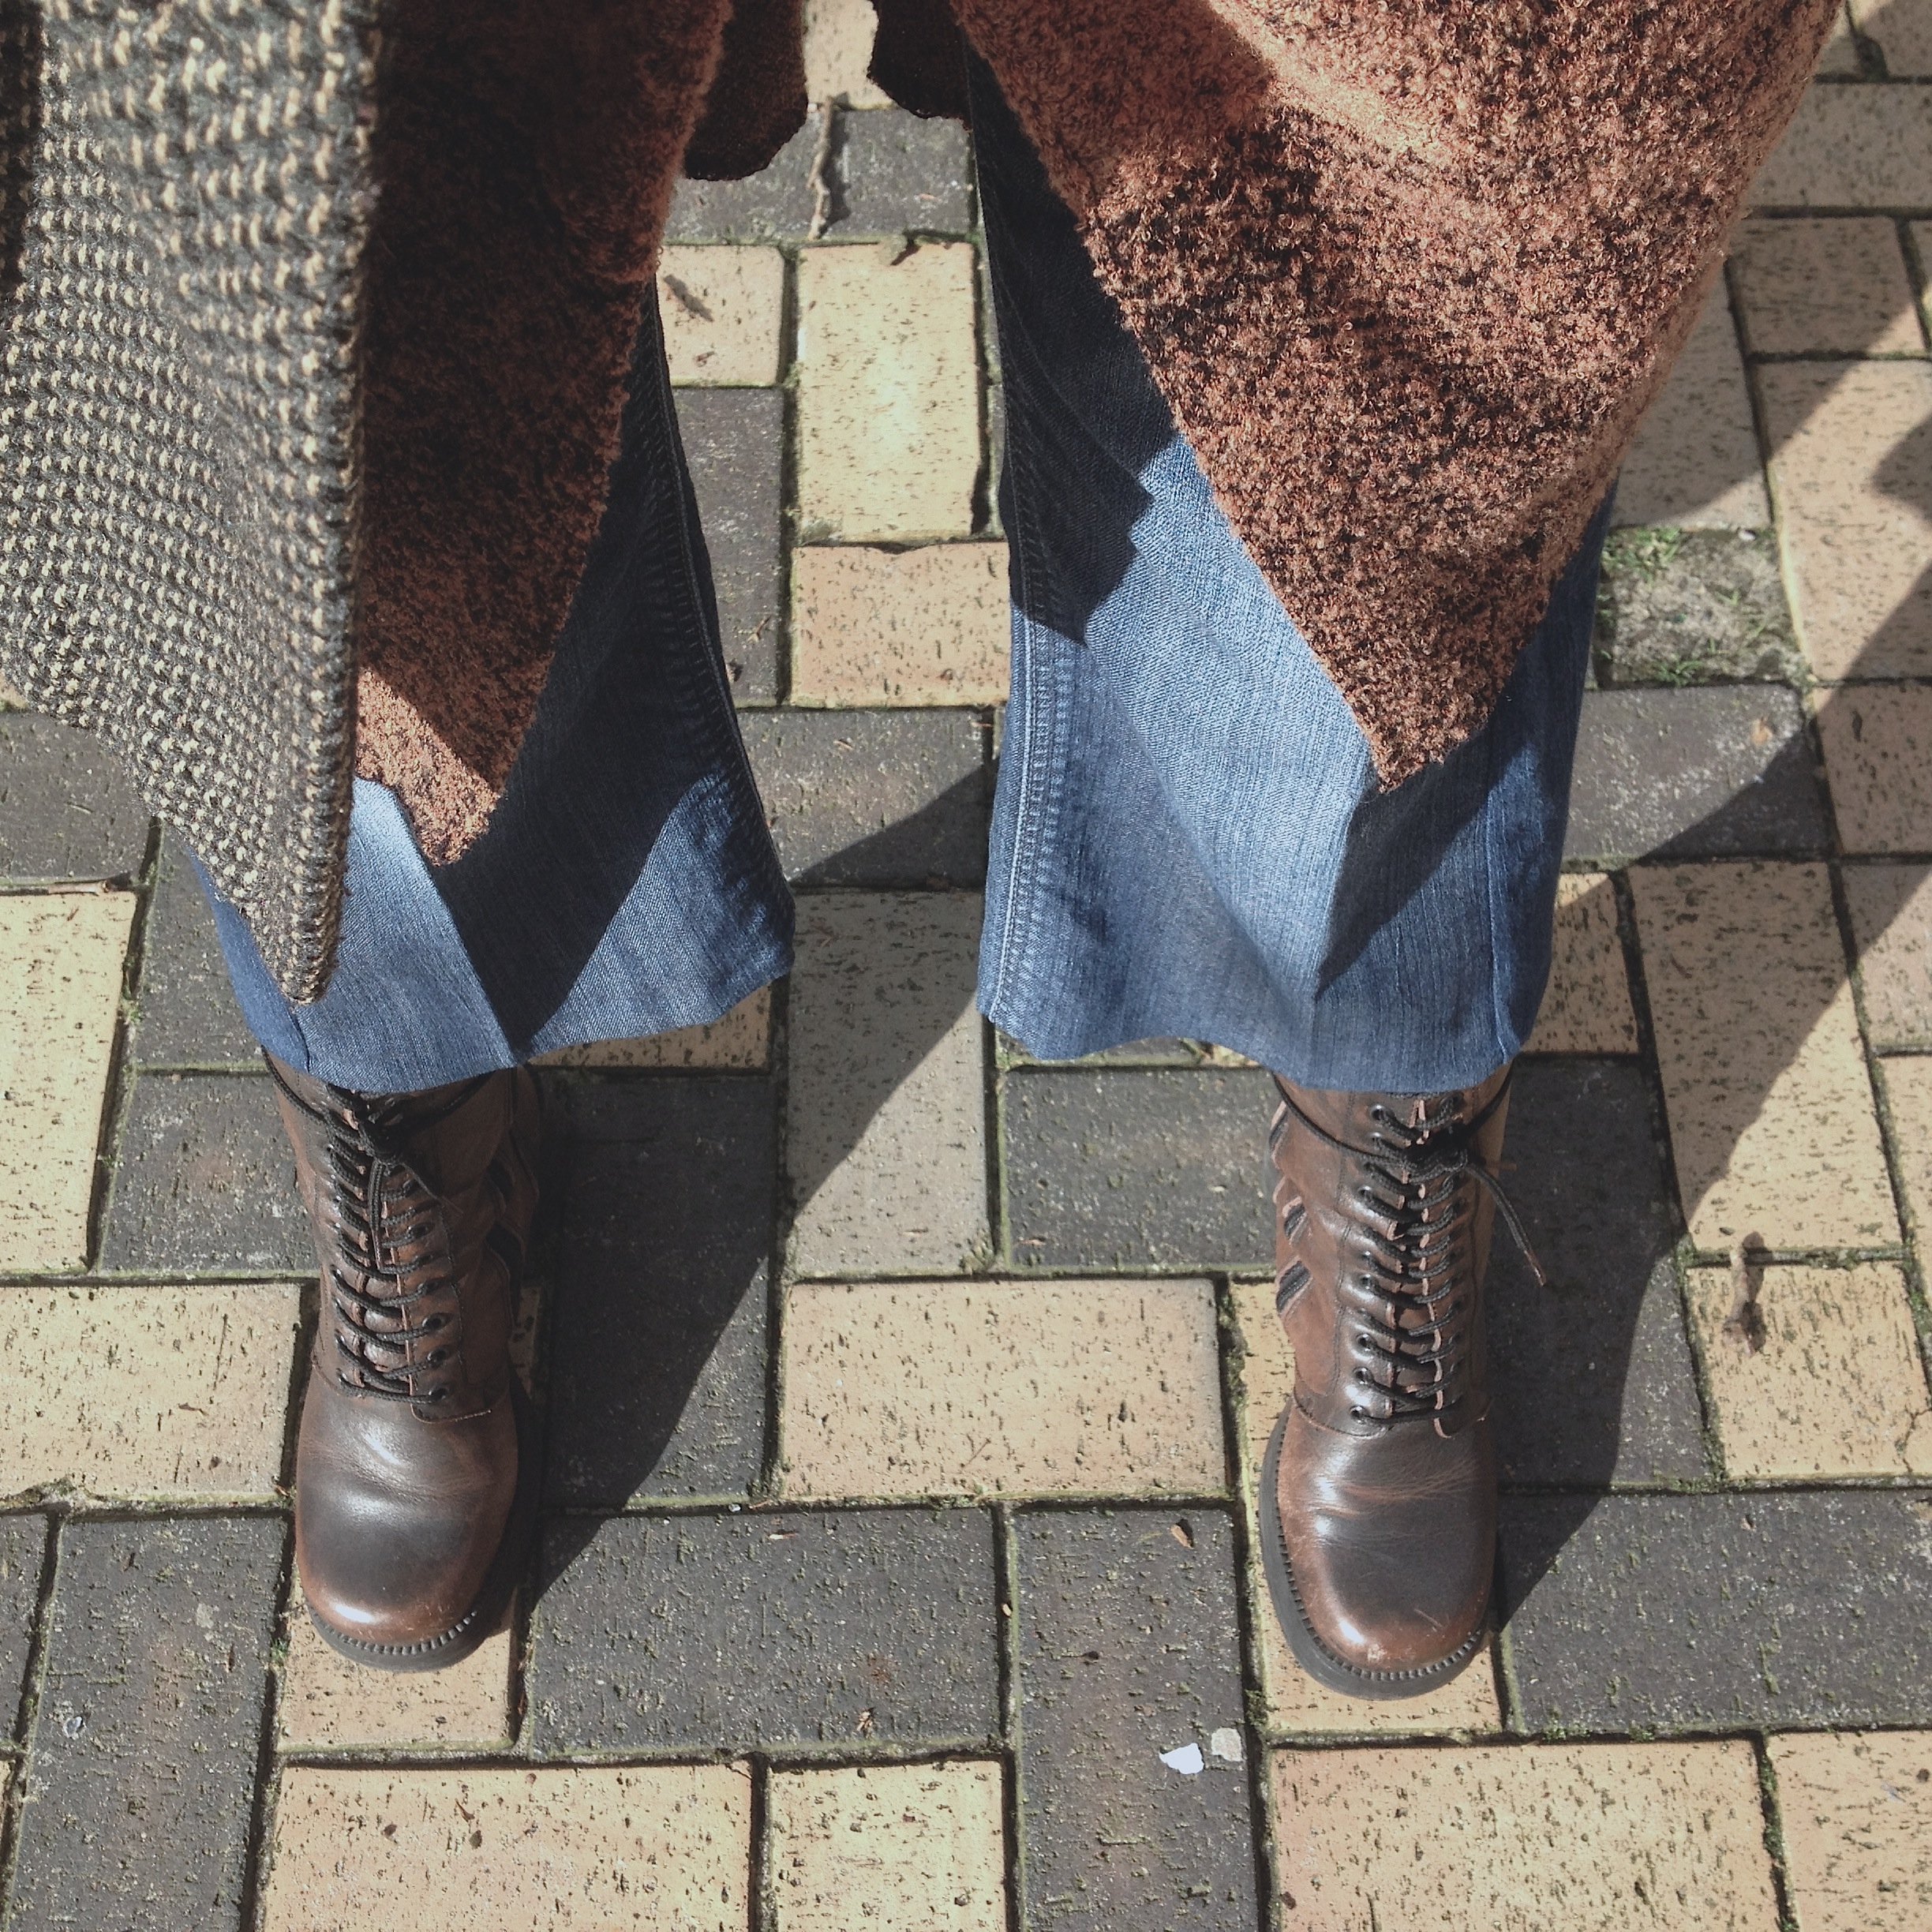 wearing my culottes with vintage boots